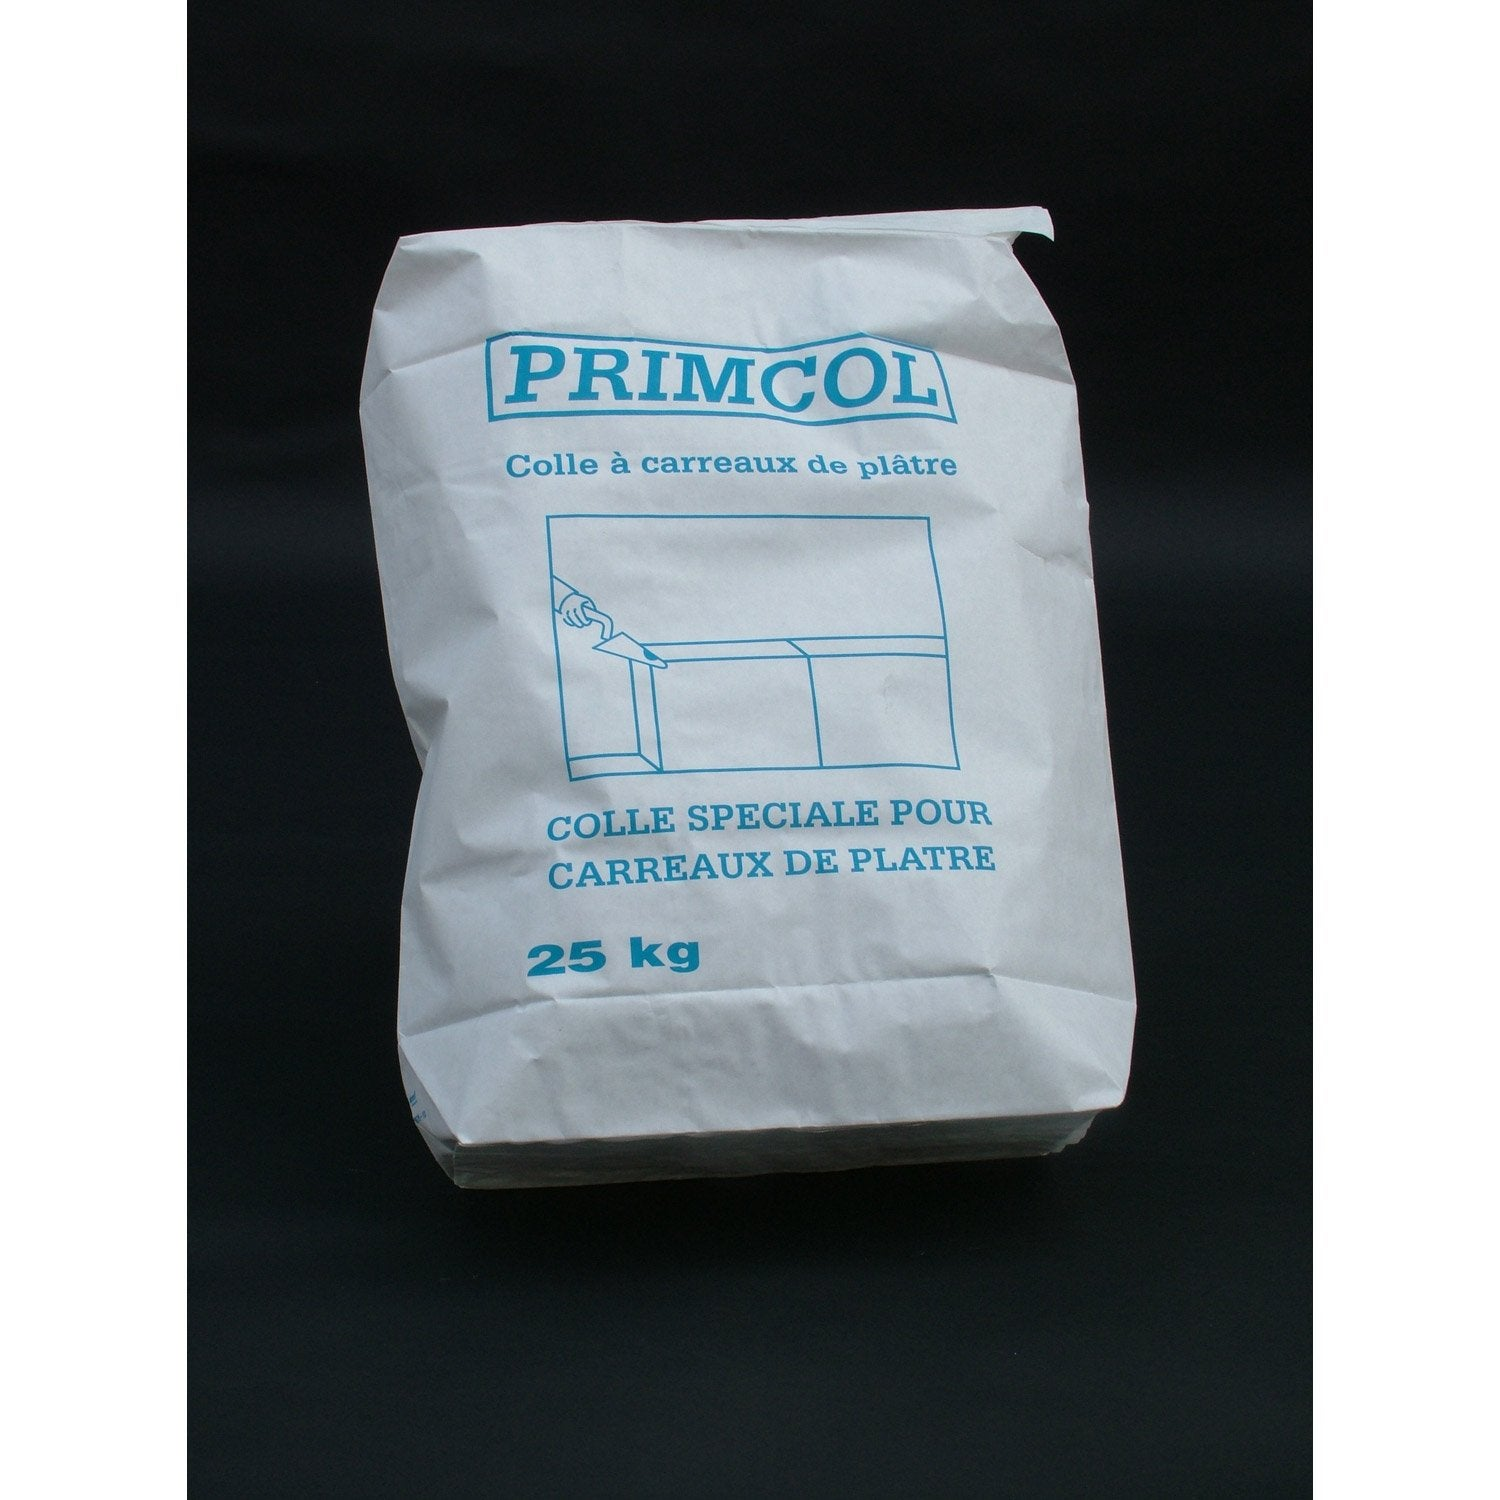 Colle pour carreaux de pl tre primcol home pratik 25 kg leroy merlin - Colle pour gazon synthetique leroy merlin ...